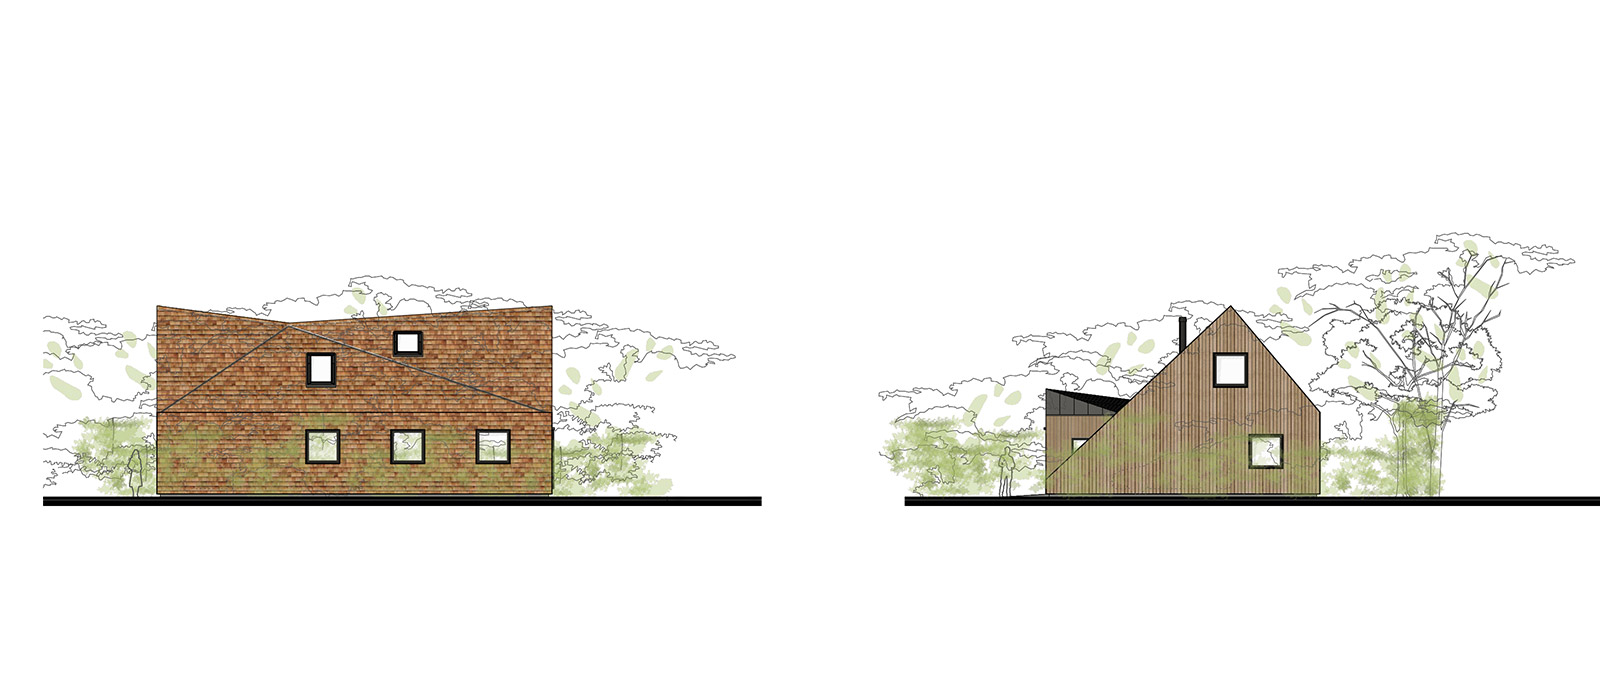 gyd architecture | elevations of timber framed eco house